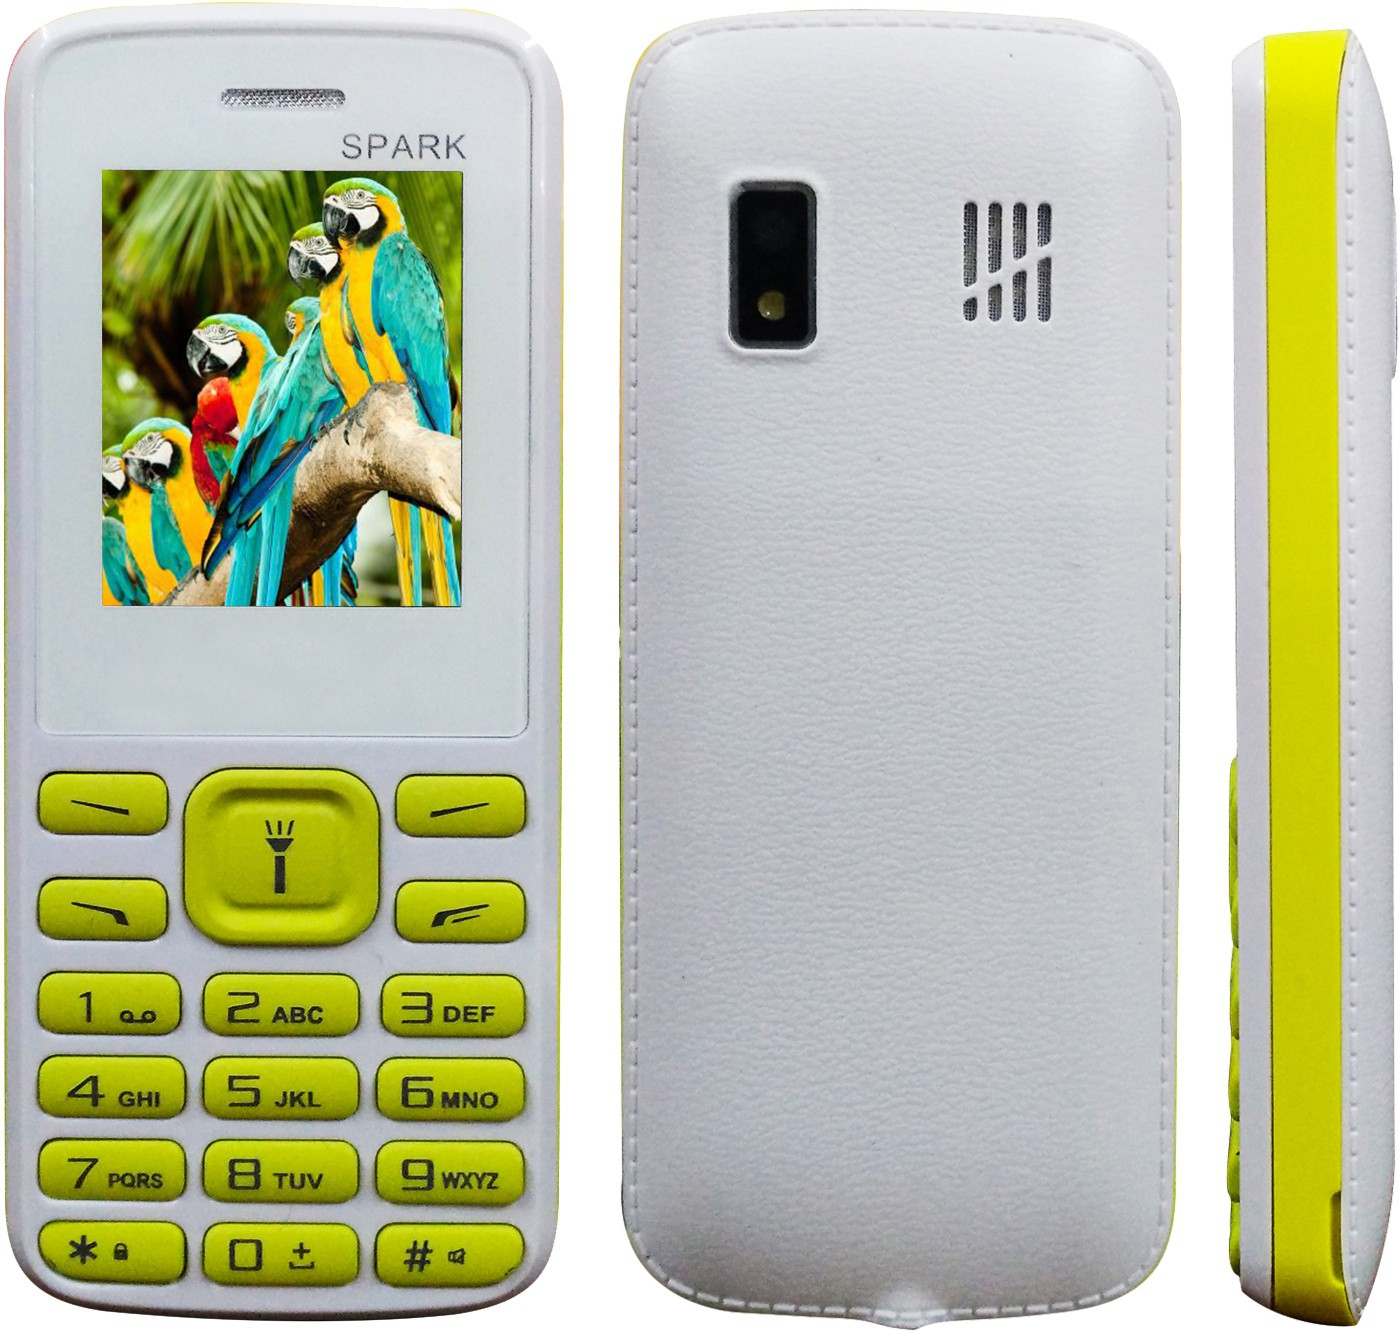 Mobi Store Spark(White and Yellow)